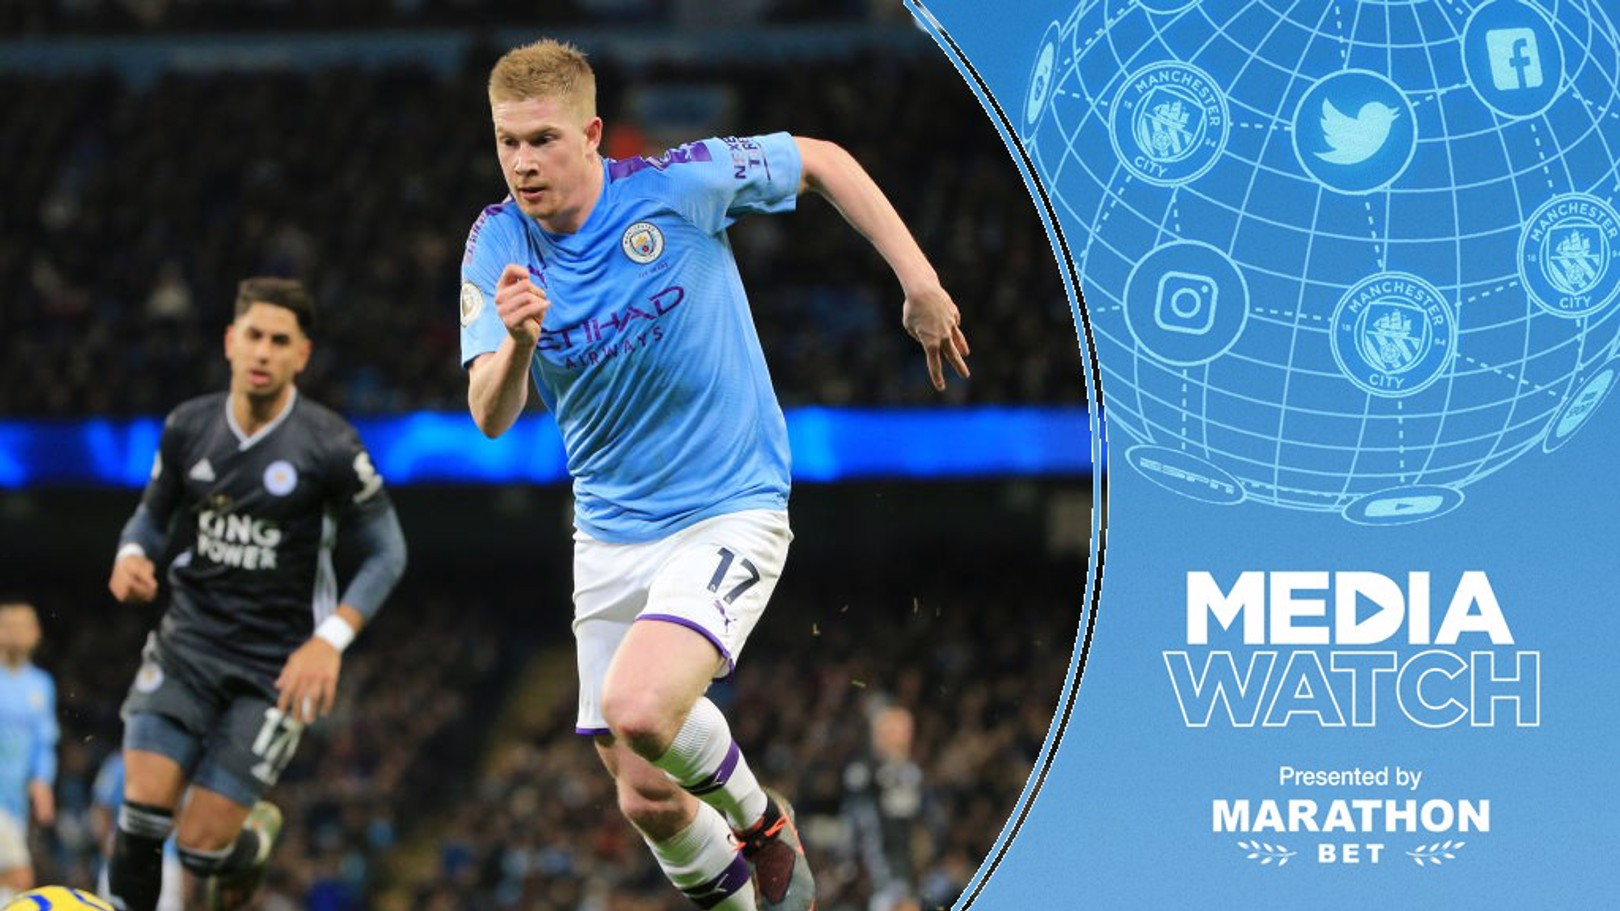 MEDIA WATCH: There's been more praise for Kevin De Bruyne.